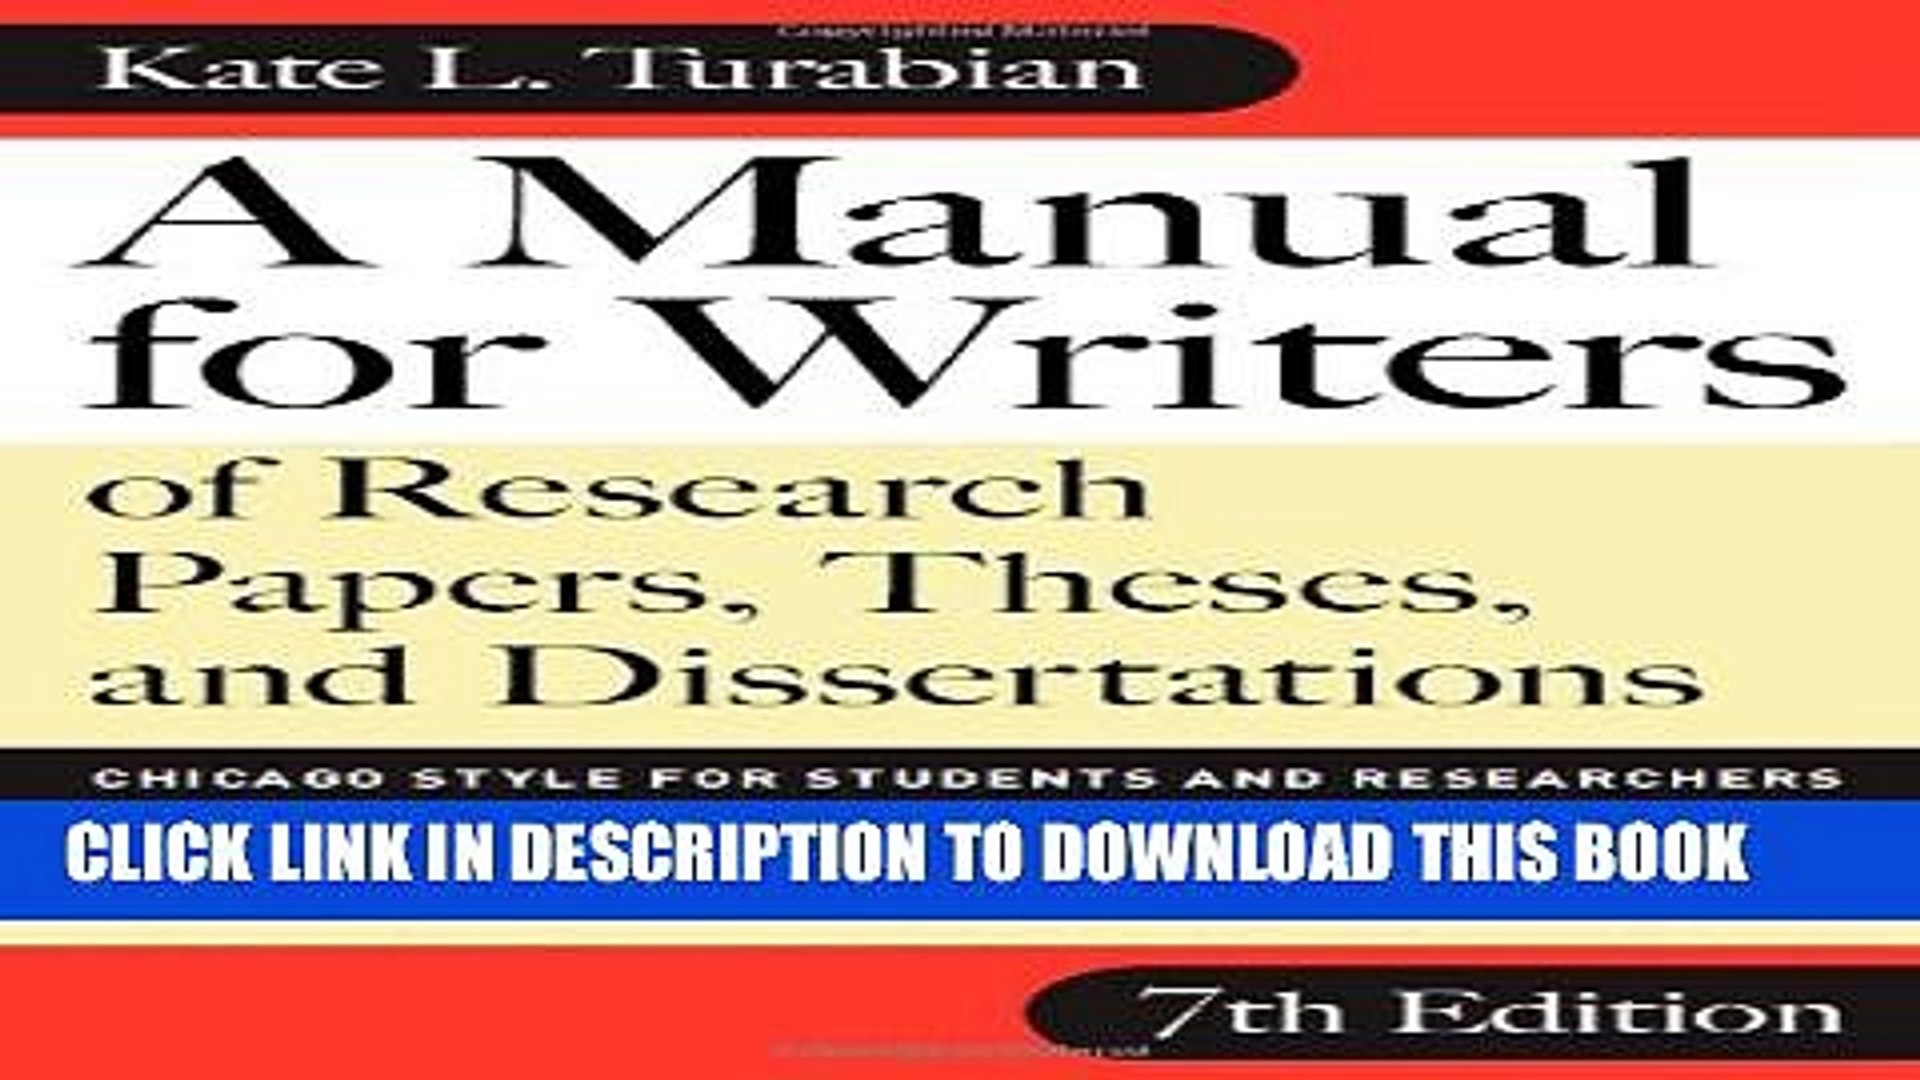 013 Manual For Writers Of Research Papers Theses And Dissertations Chicago Style Students Paper X1080 Rare A Full